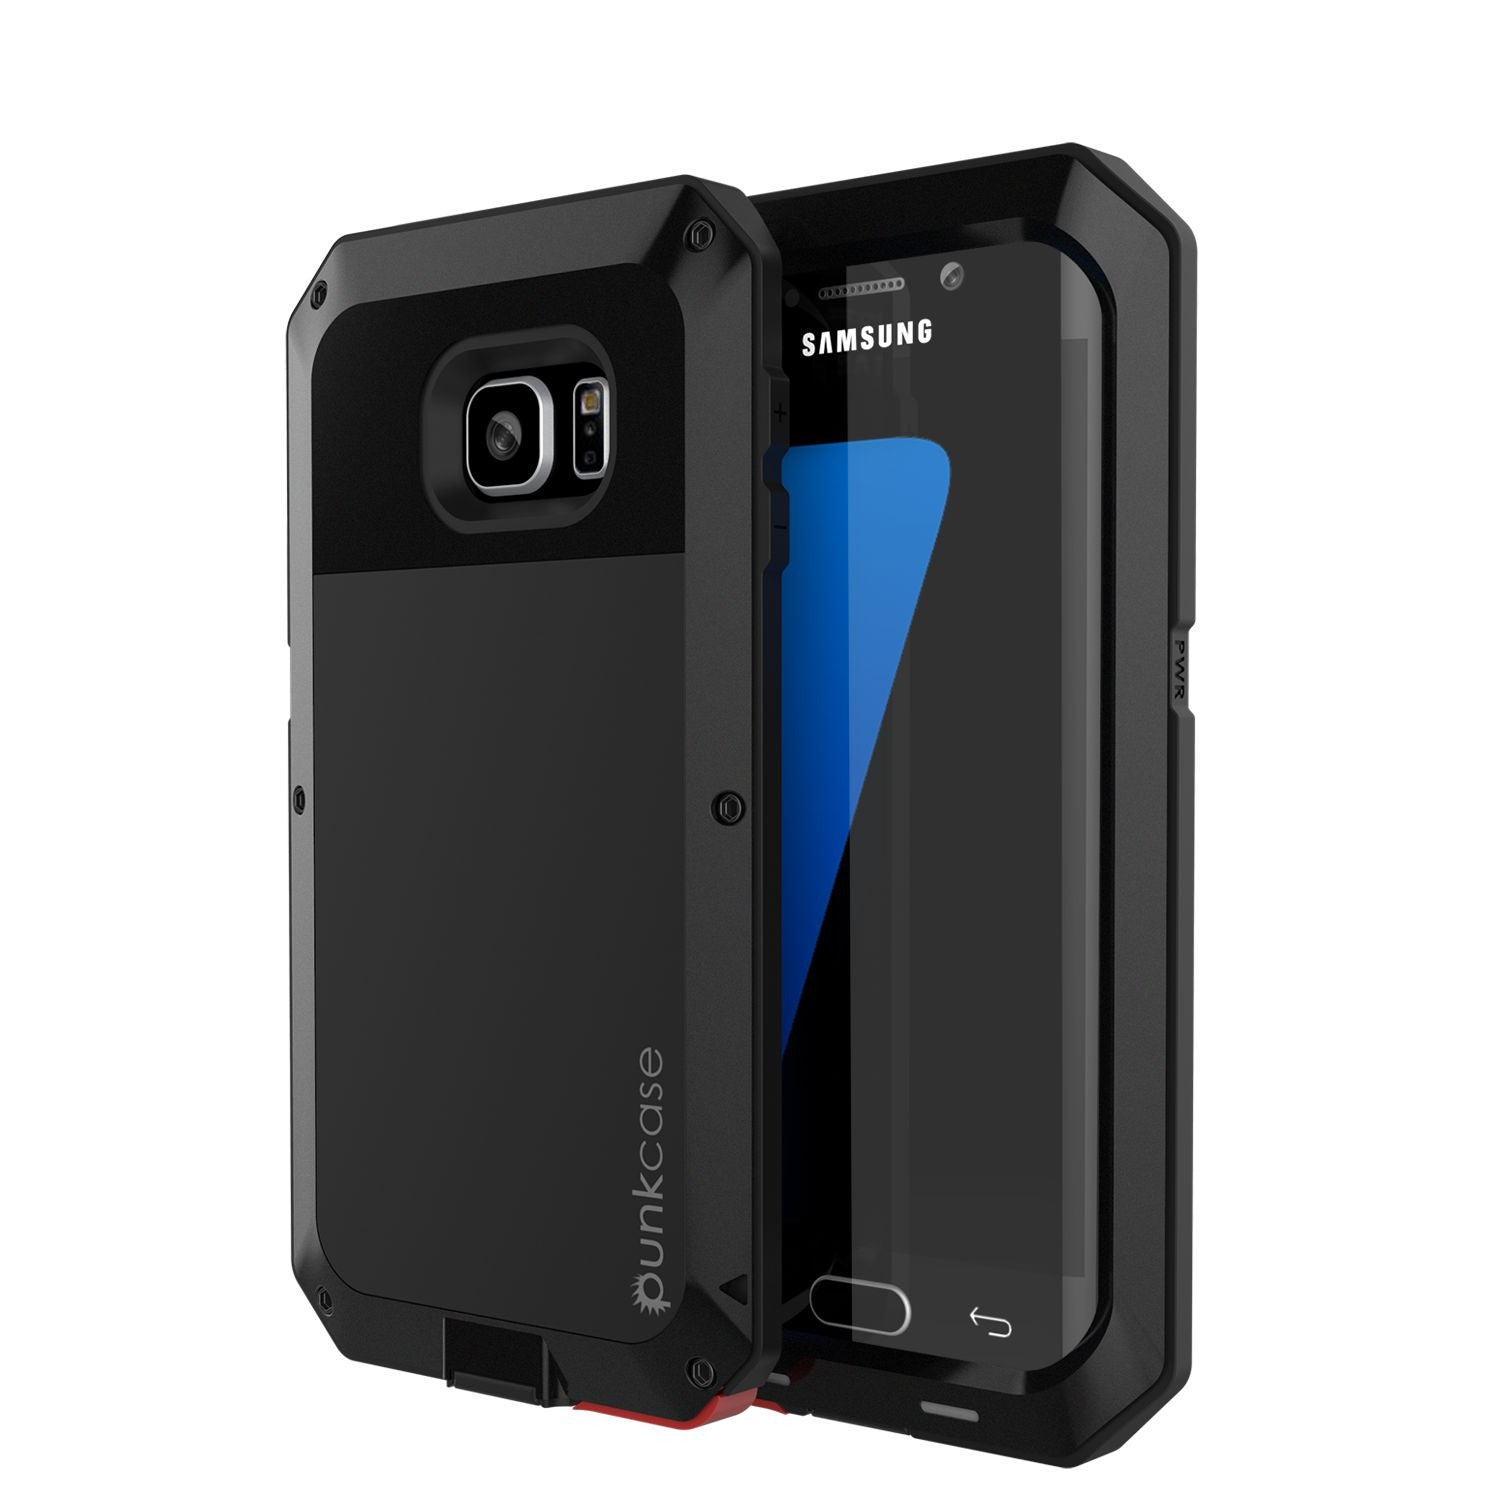 Galaxy S7 EDGE Case, PUNKcase Metallic Black Shockproof  Slim Metal Armor Case